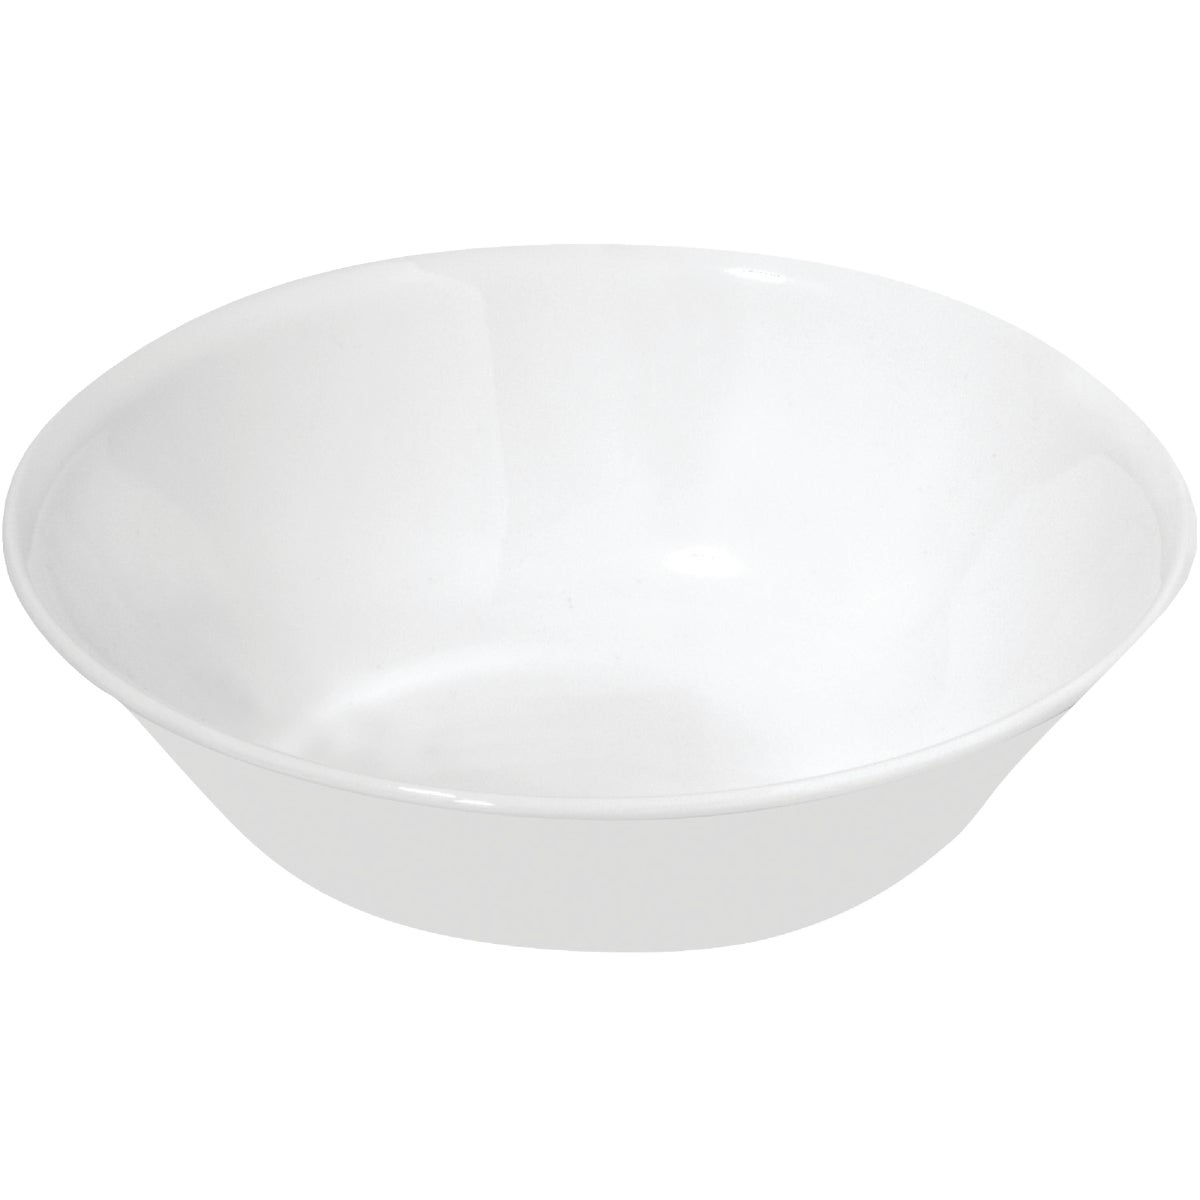 1QT WHITE SERVING BOWL